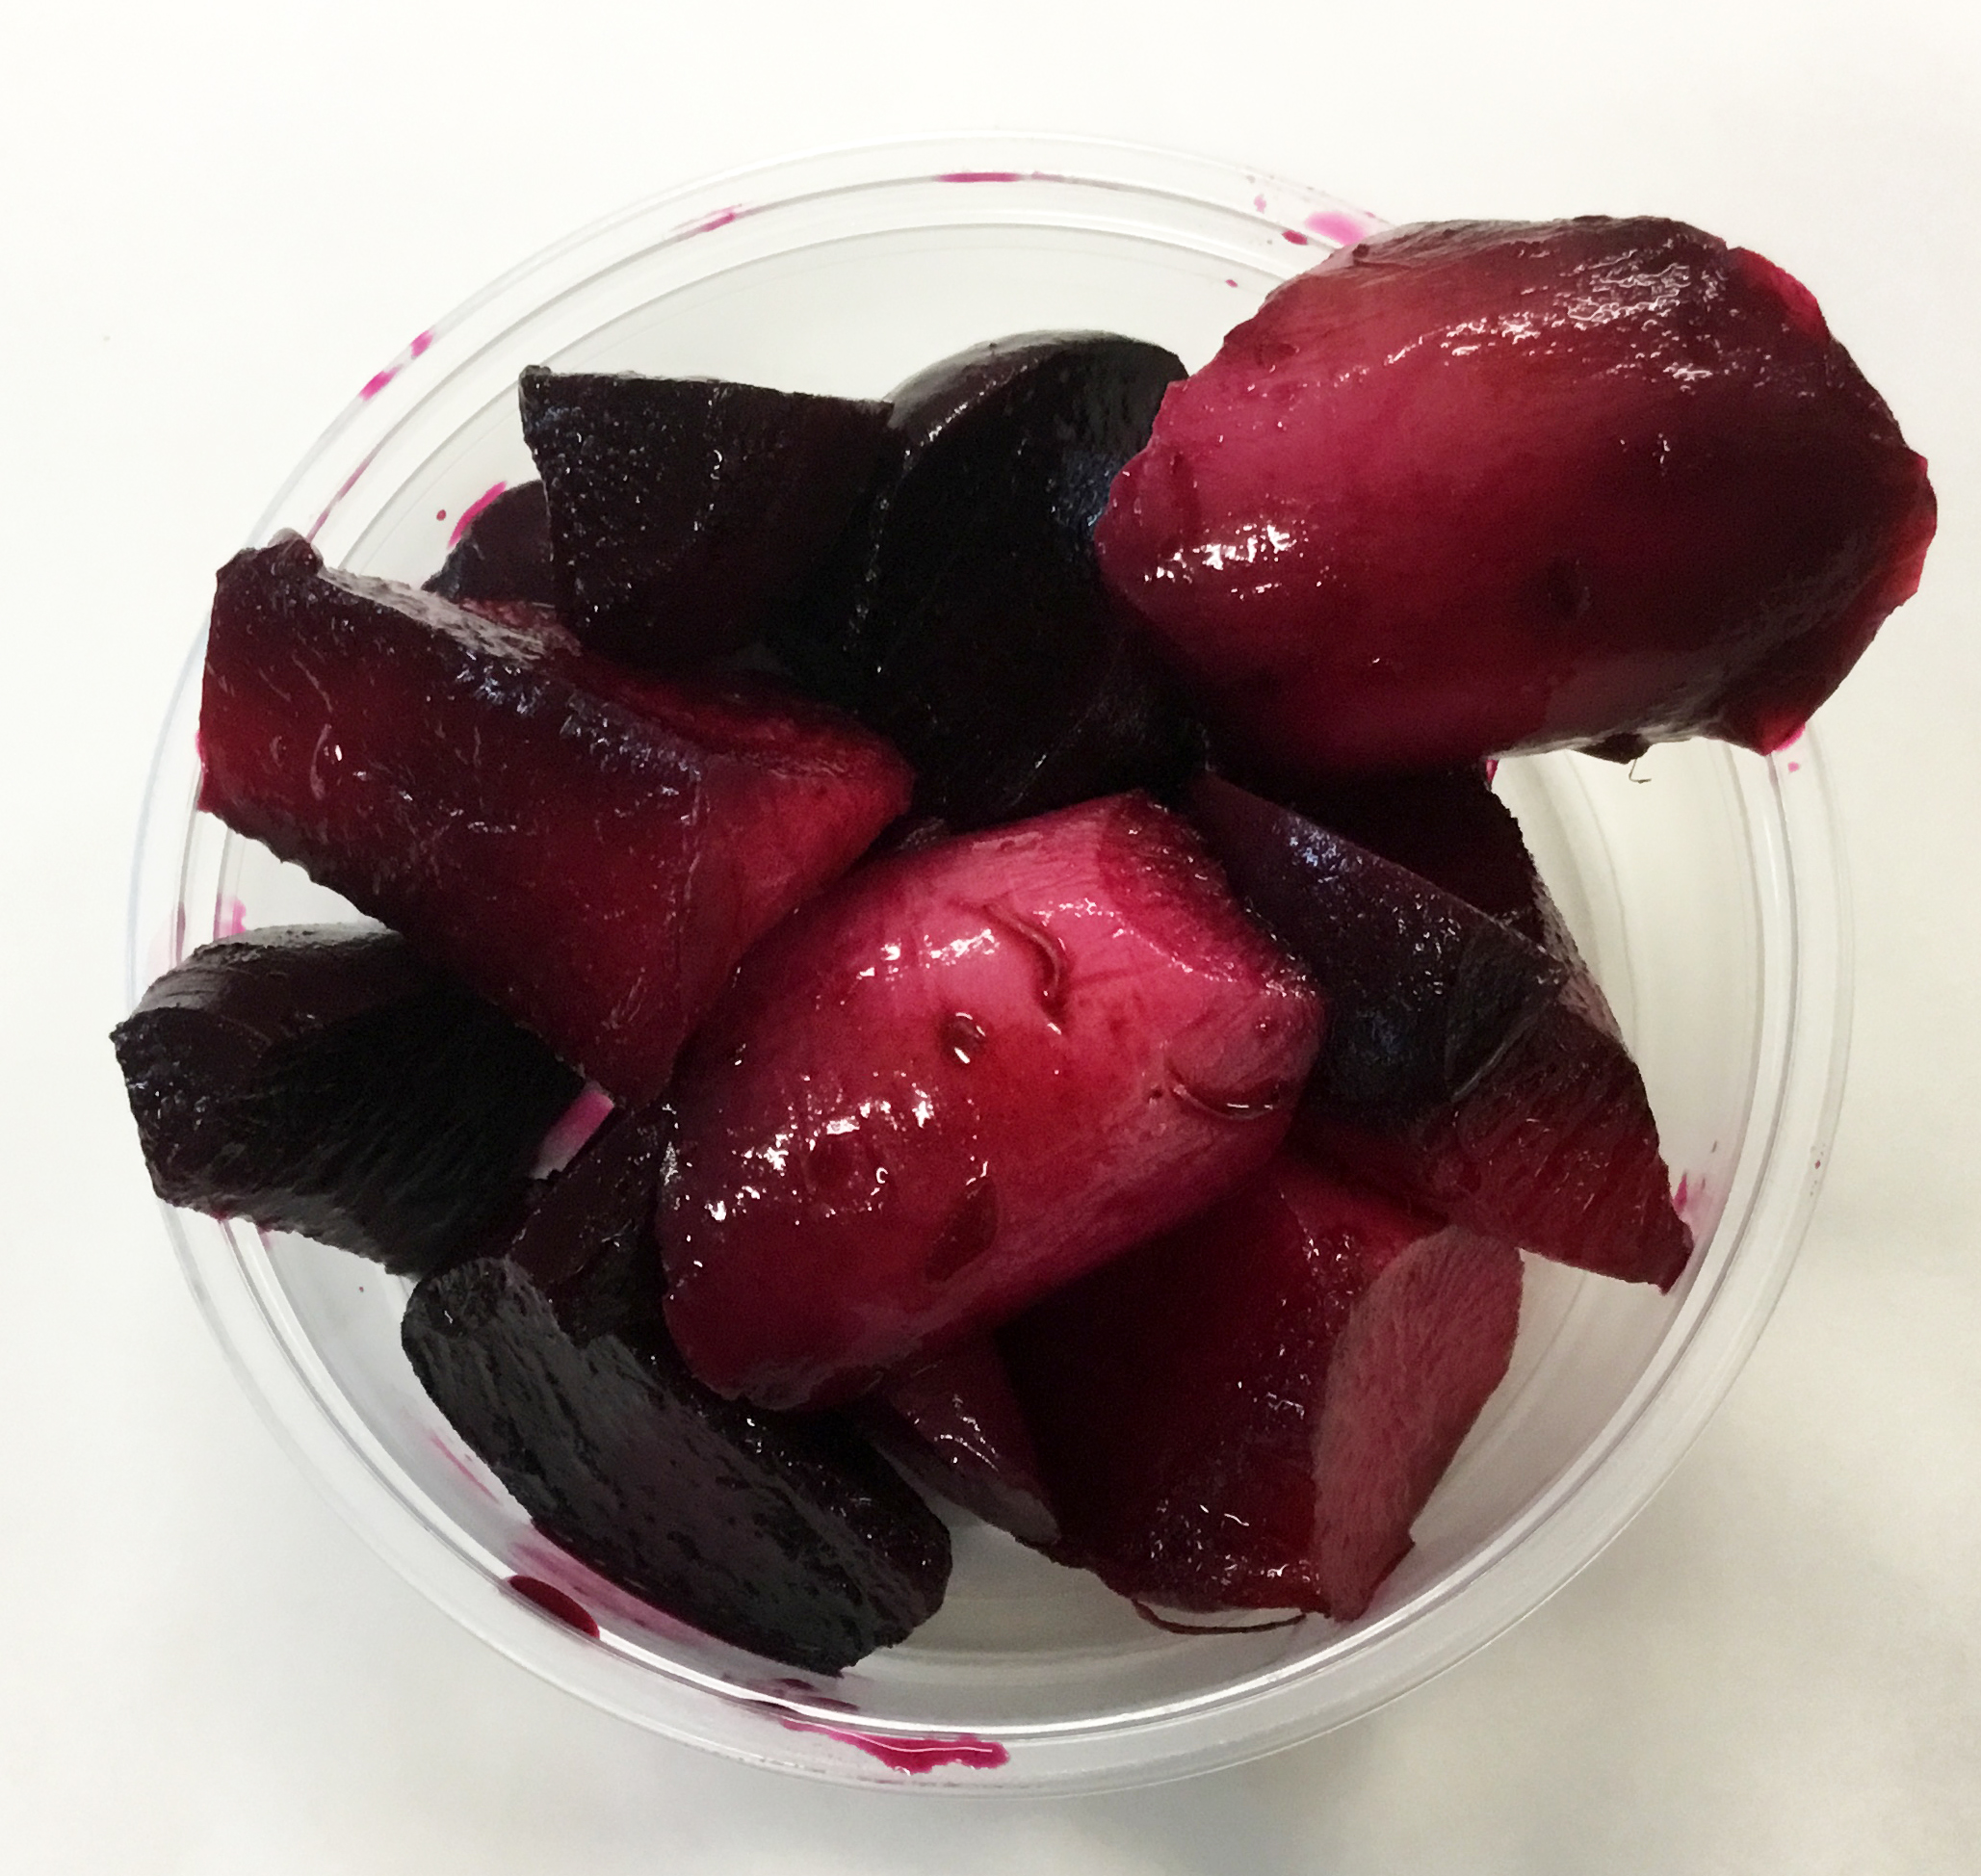 nishime of daikon and beets